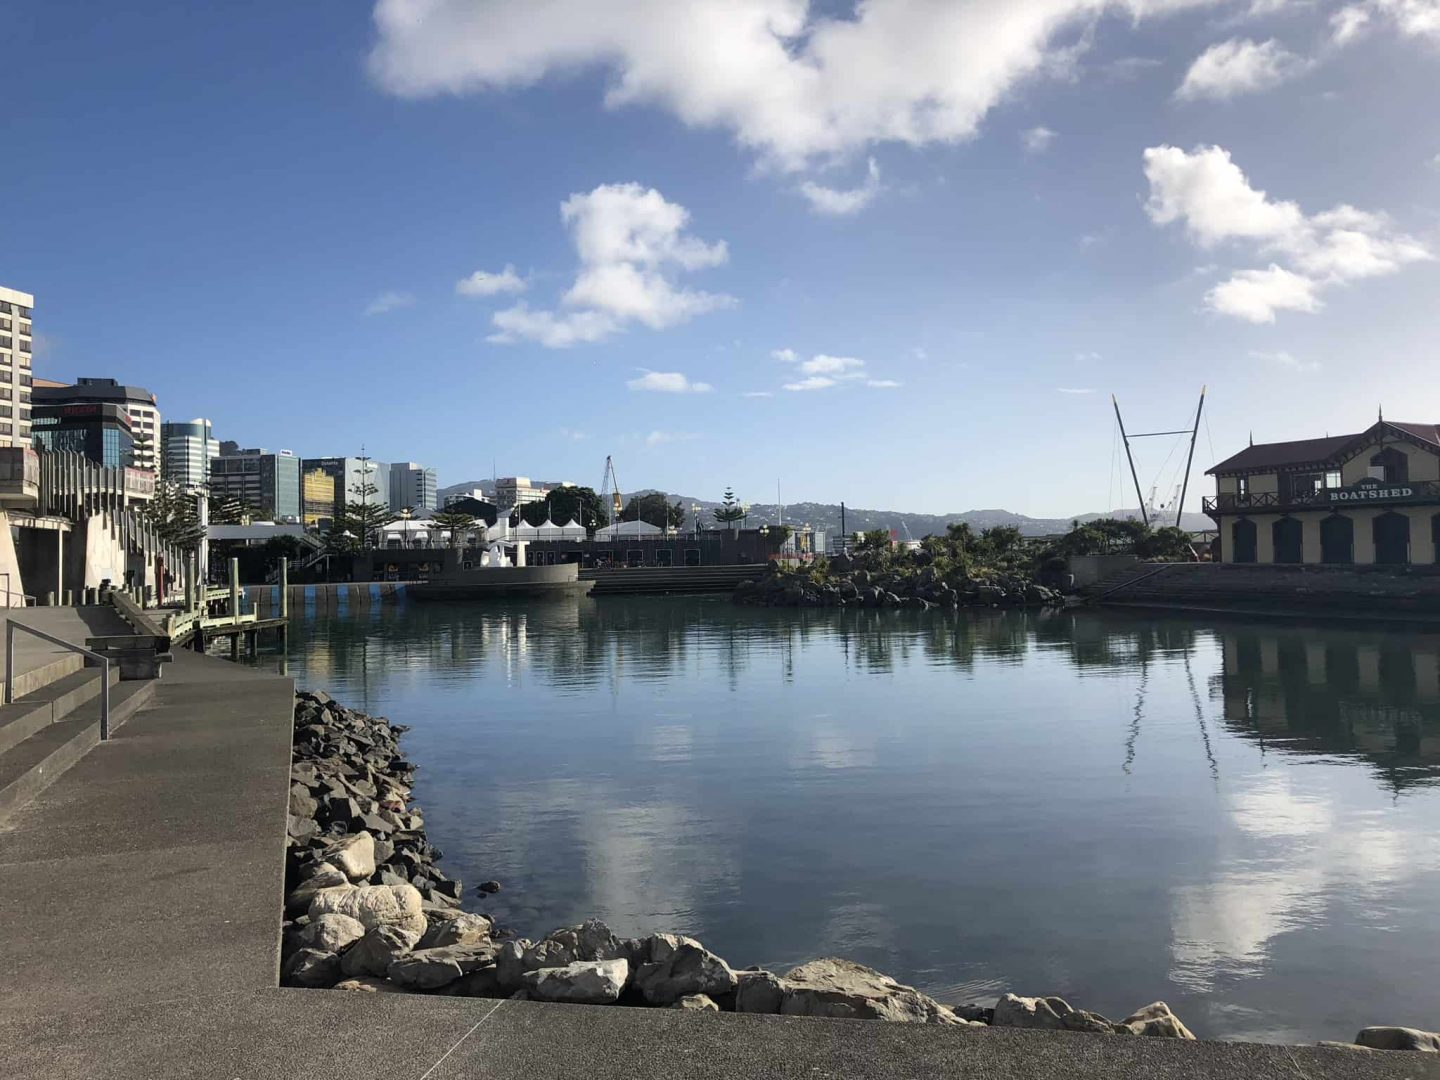 New Zealand Wellington Waterfront by Ioana Stoica